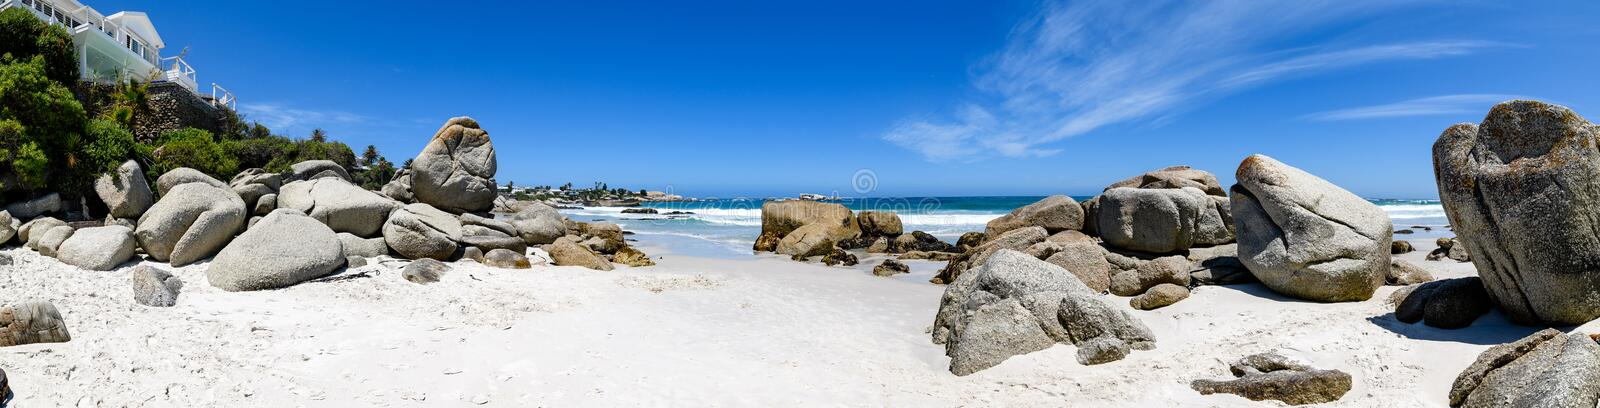 A panoramic view looking down on the beautiful white sand beaches of clifton in the cape town area of south africa.4. A panoramic view from the luxury apartments royalty free stock photos